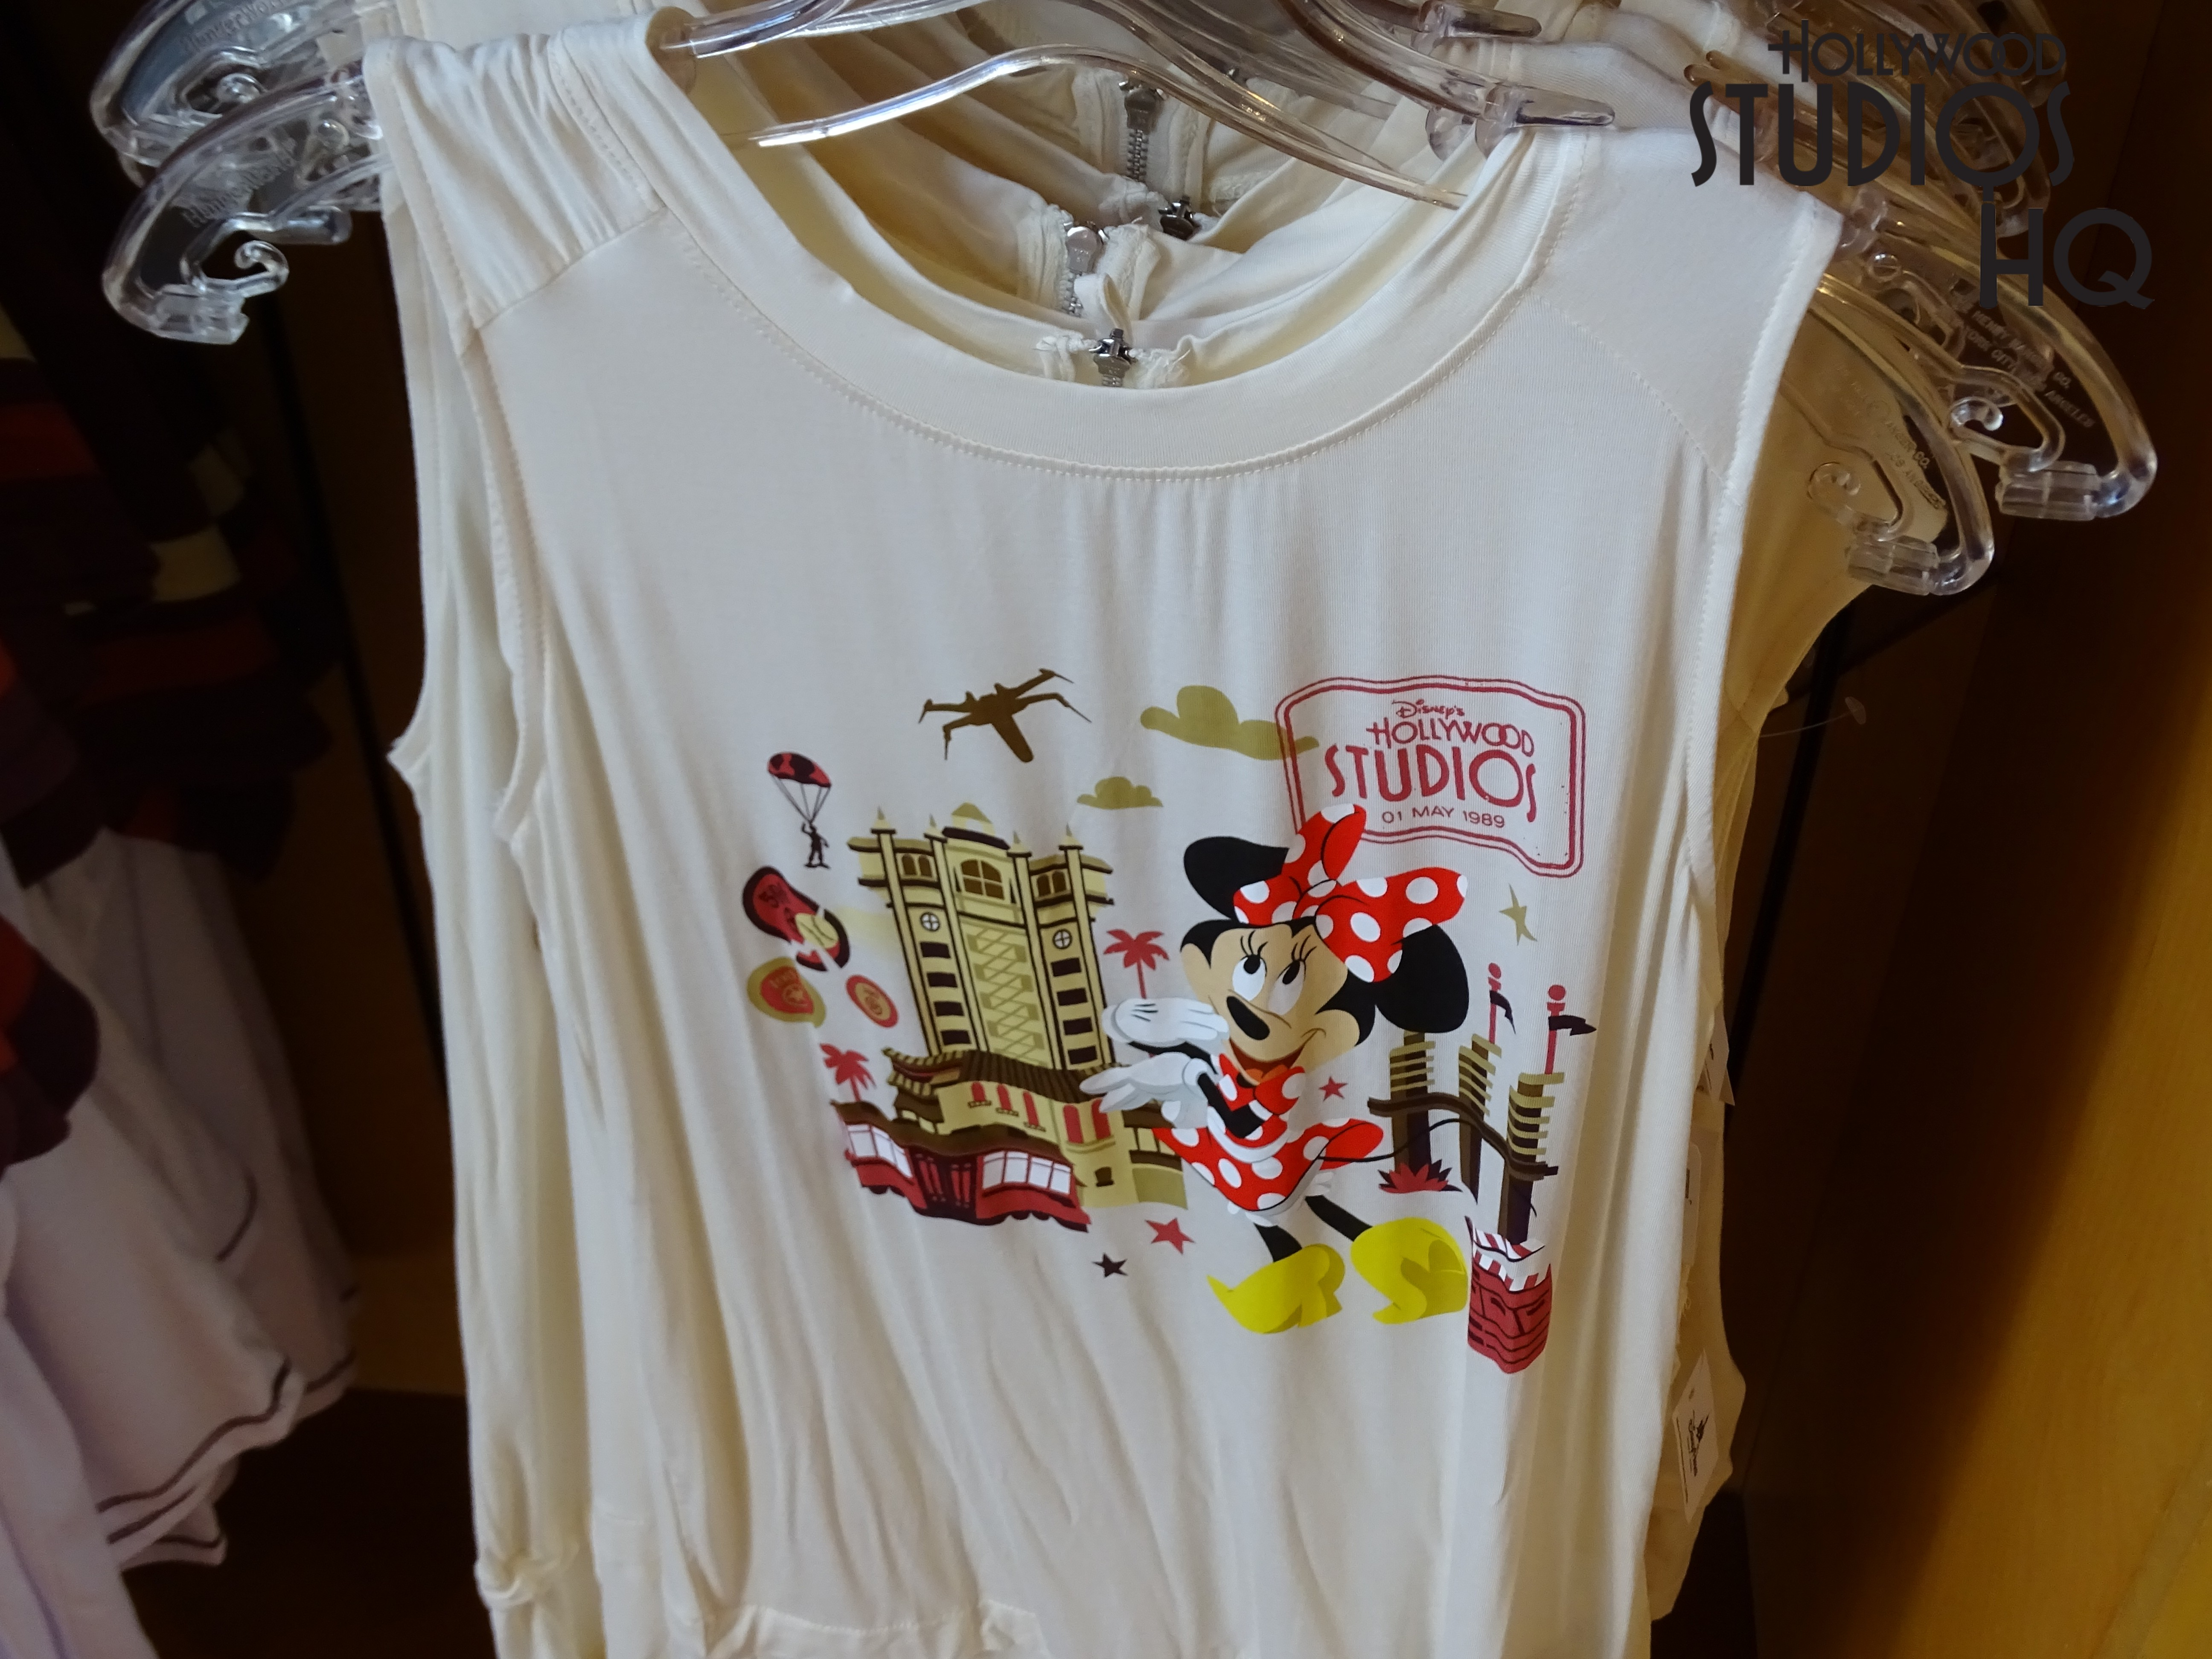 All Studios merchandise is now also featured in Mickey's of Hollywood, in addition to the month long selection at The Tower of Terror gift shop. Mugs, sweatshirts, shirts, button down shirts, luggage tags and so much more await those shopping for merchandise with a special Studios touch.